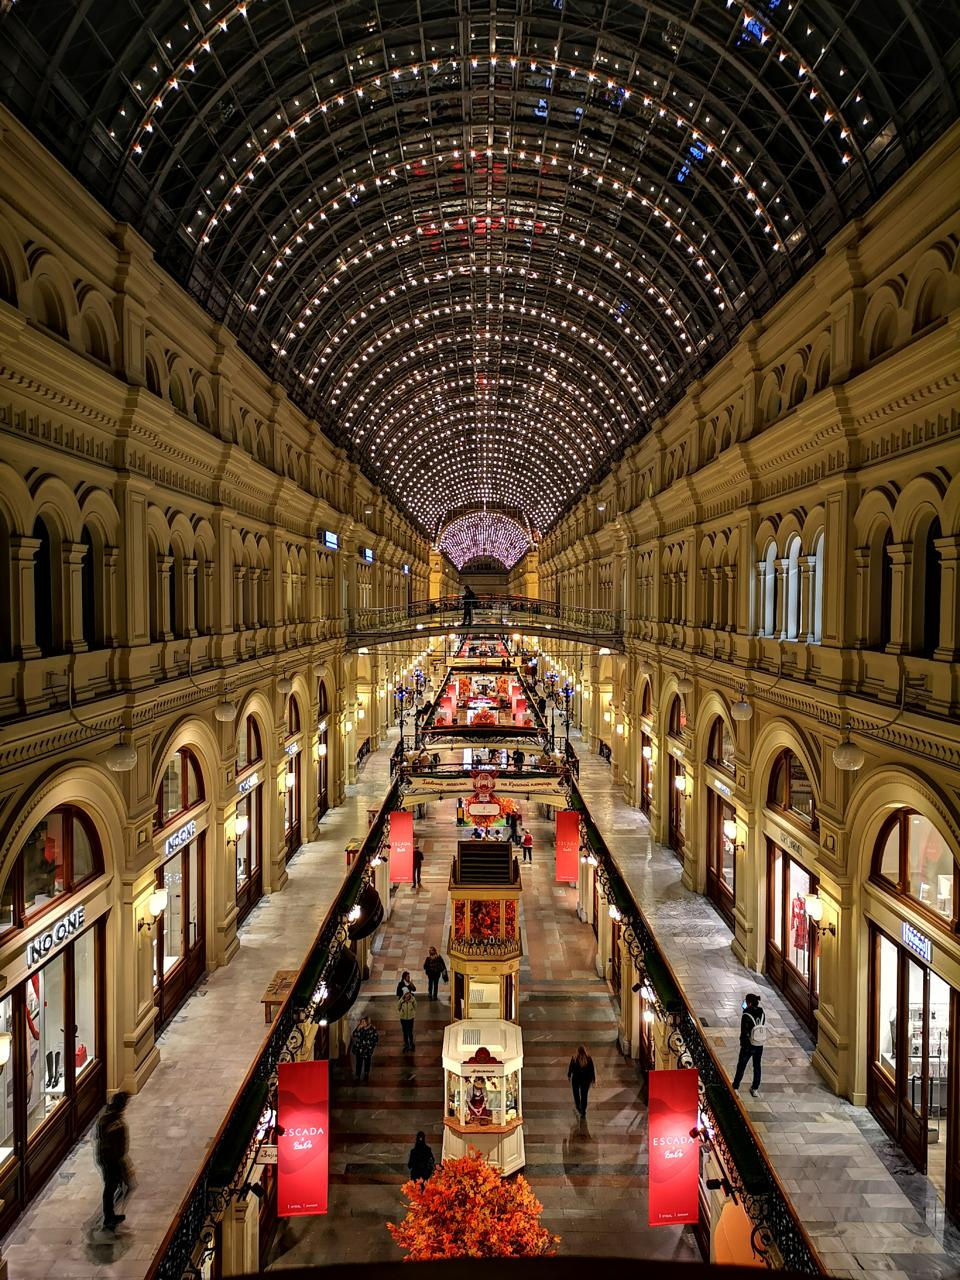 GUM shopping center in Moscow is a retail phenomena